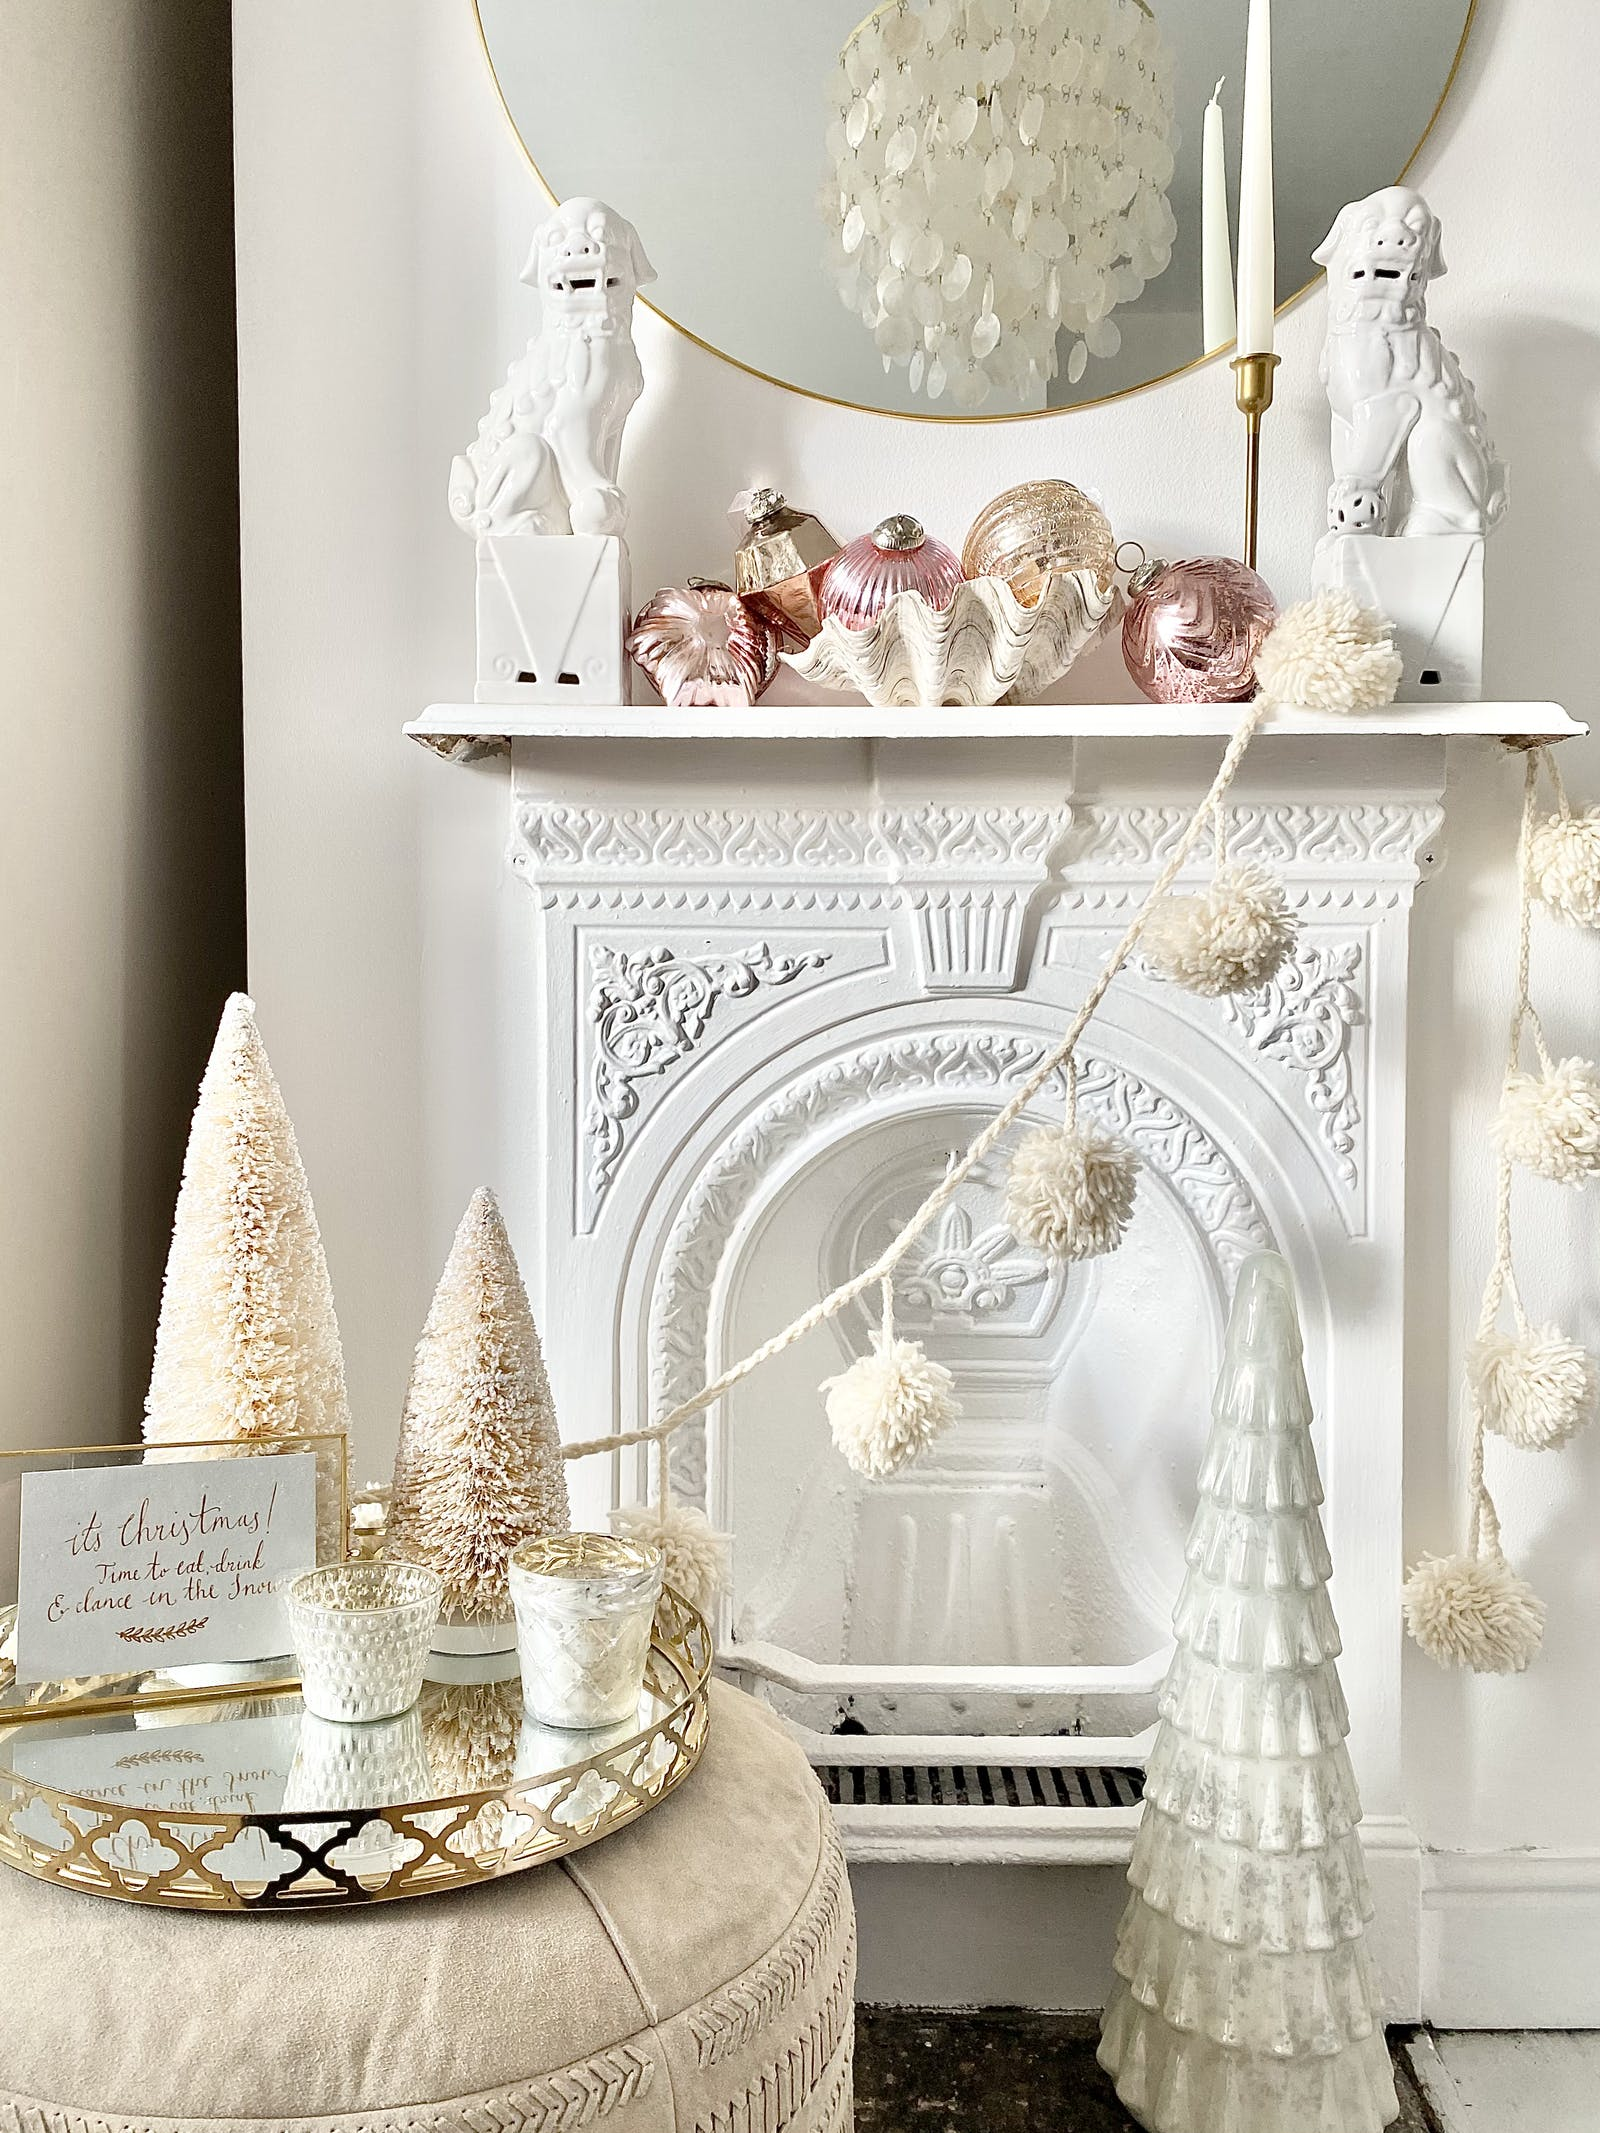 White fireplace with various Christmas decorations and a white garland